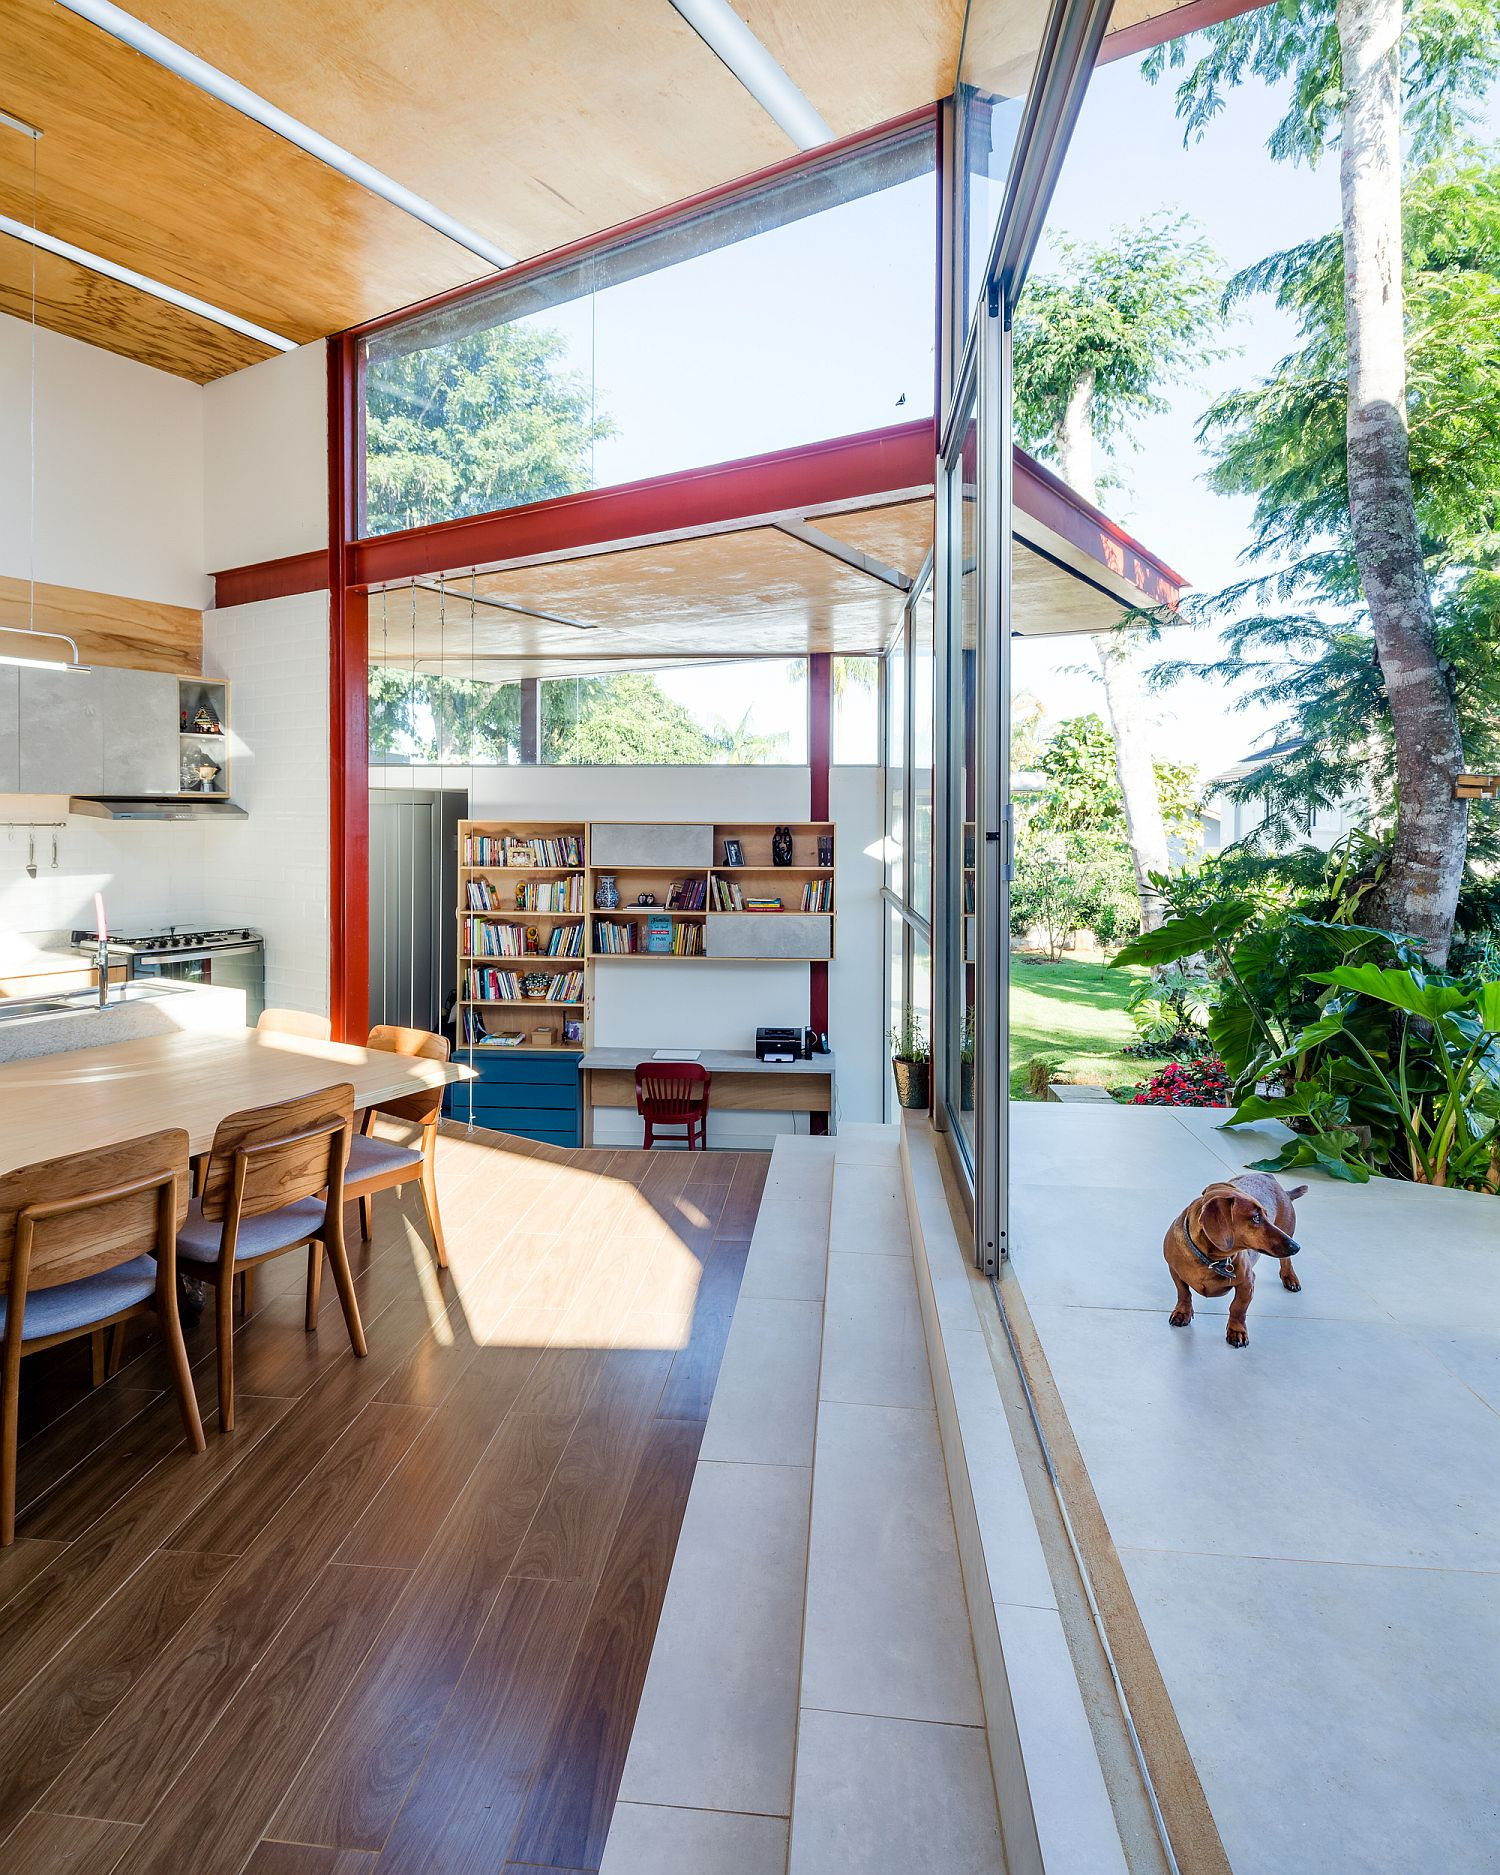 Smart use of sliding glass doors connects the living area with the deck